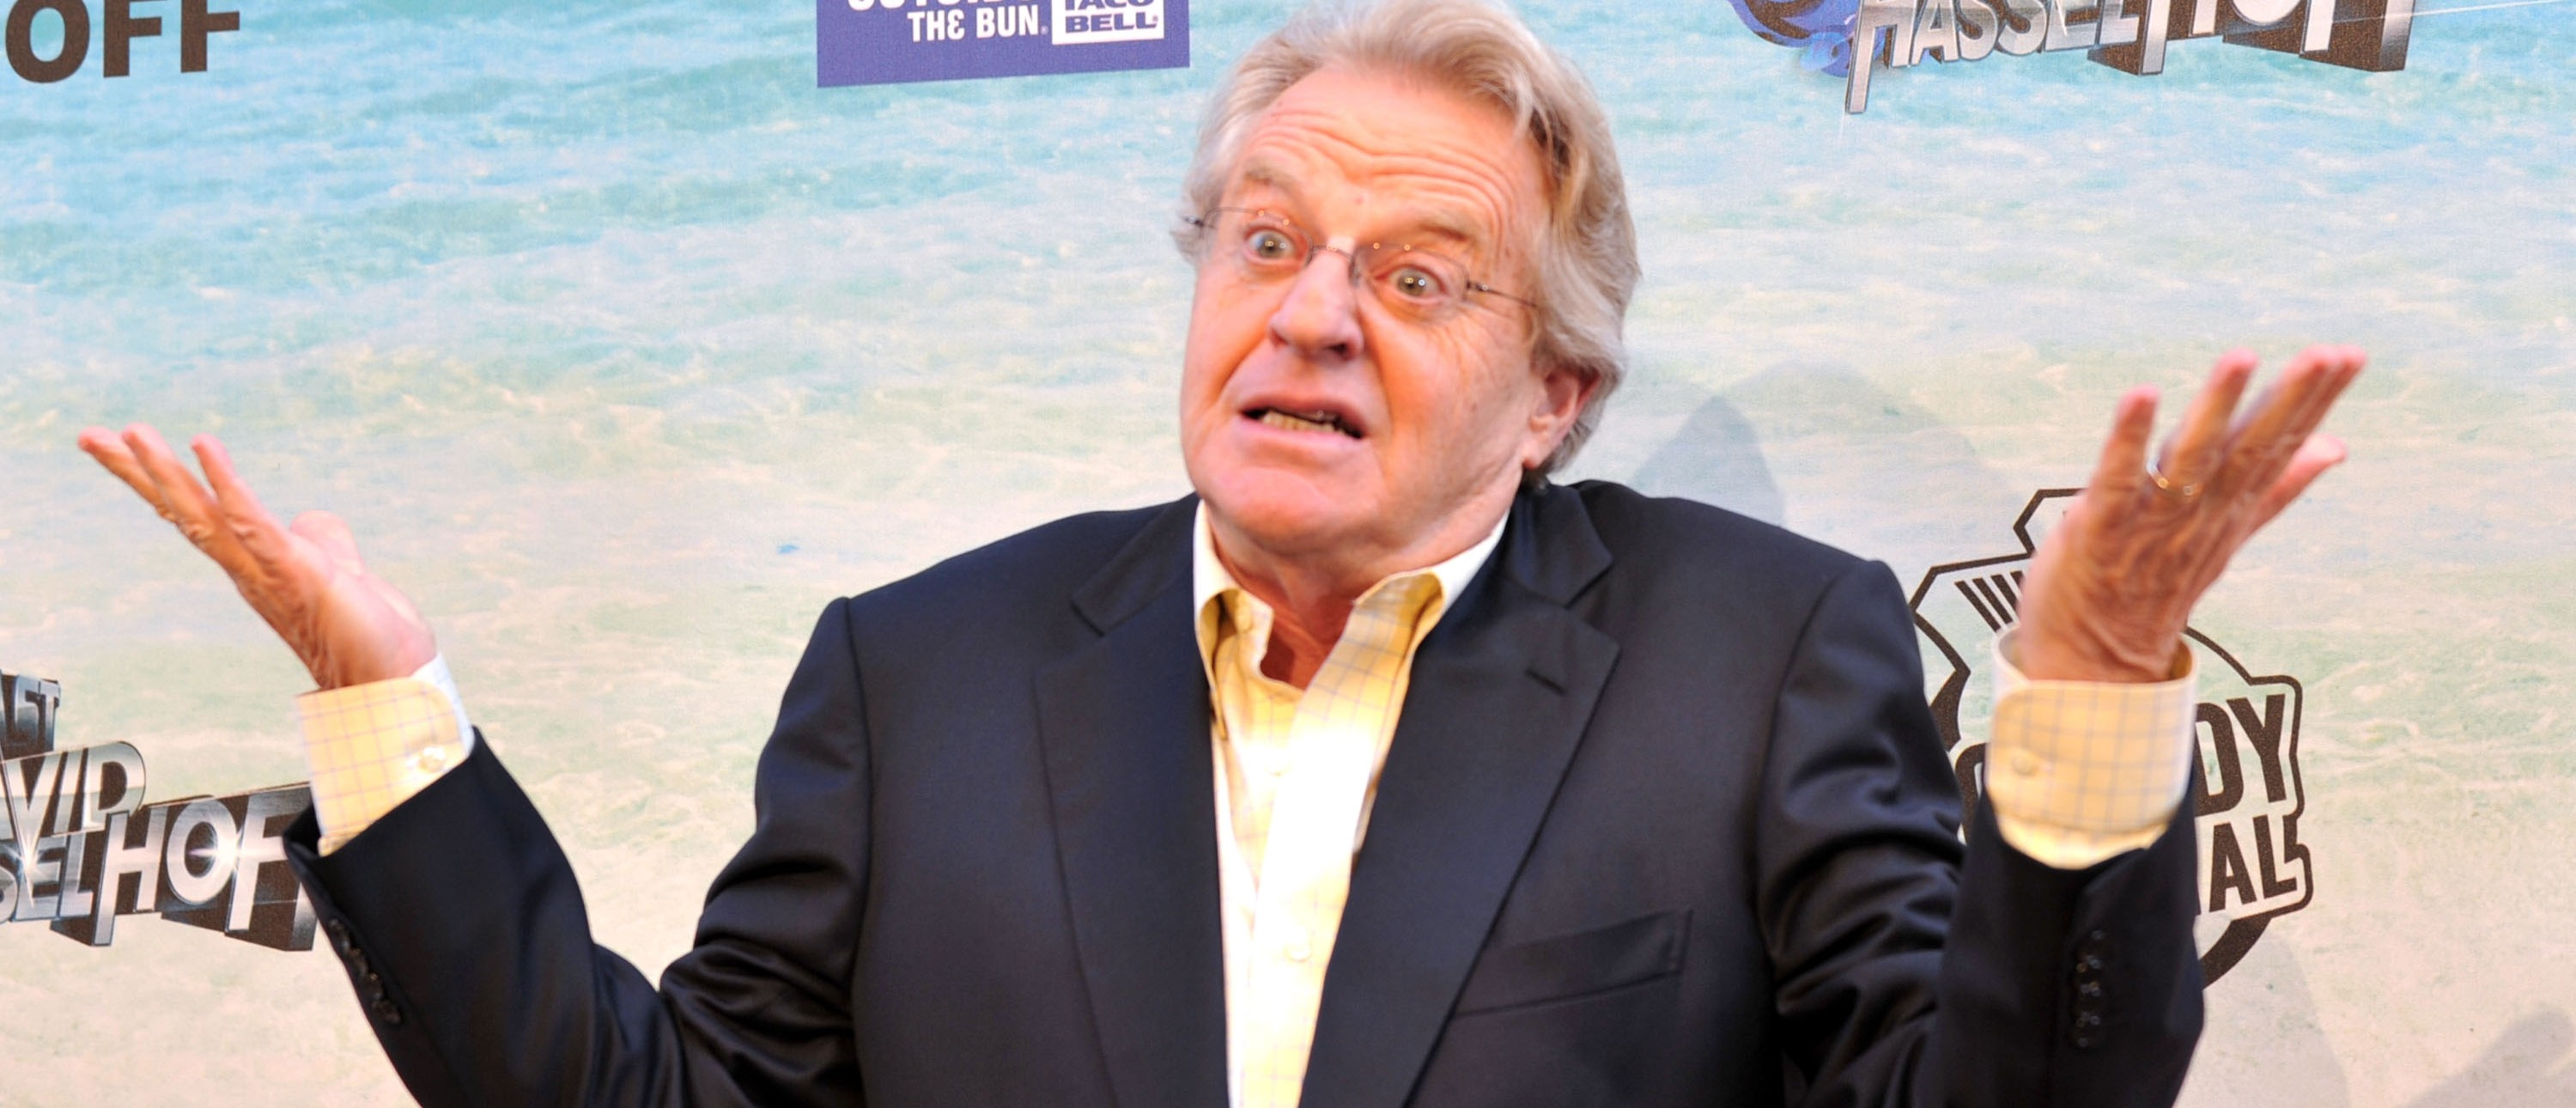 Jerry Springer says Donald Trump won't be president.